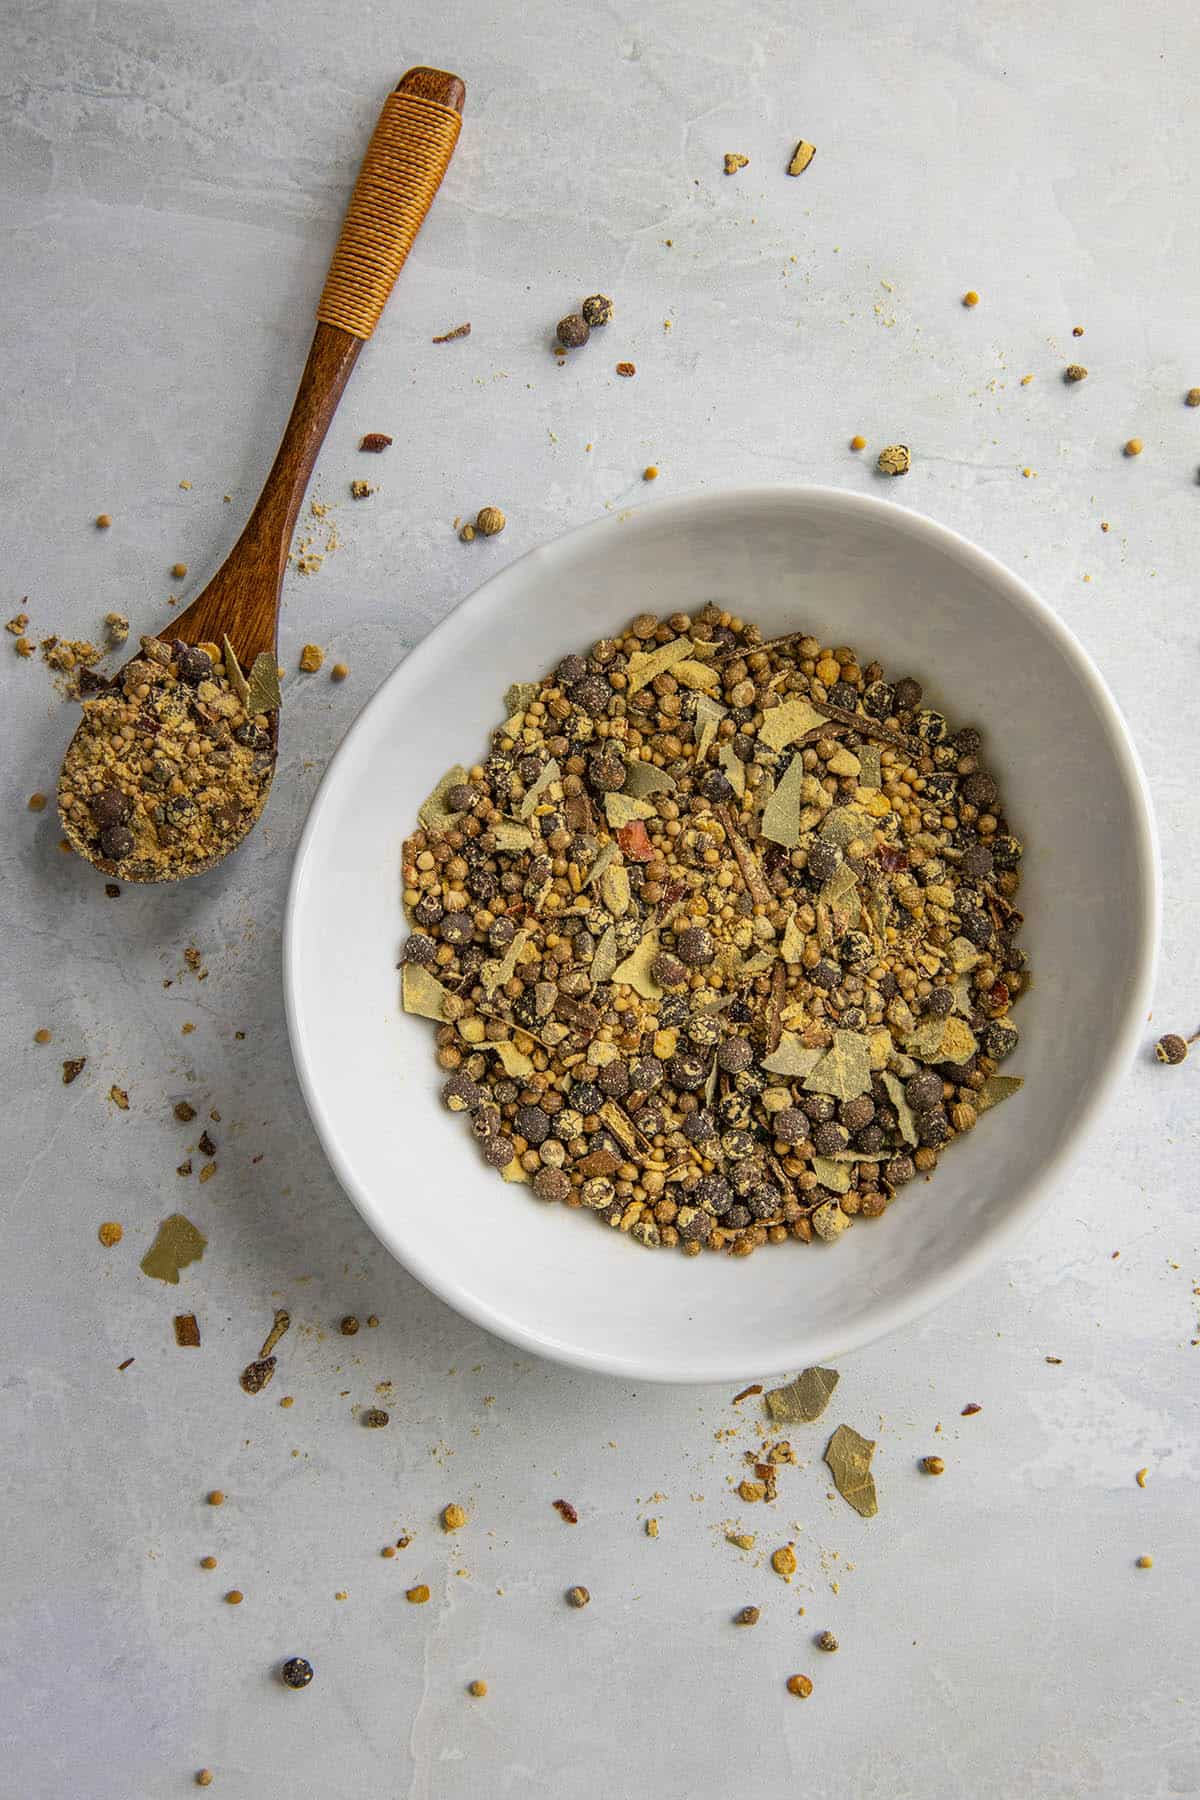 Homemade Pickling Spice with lots of seeds and seasonings